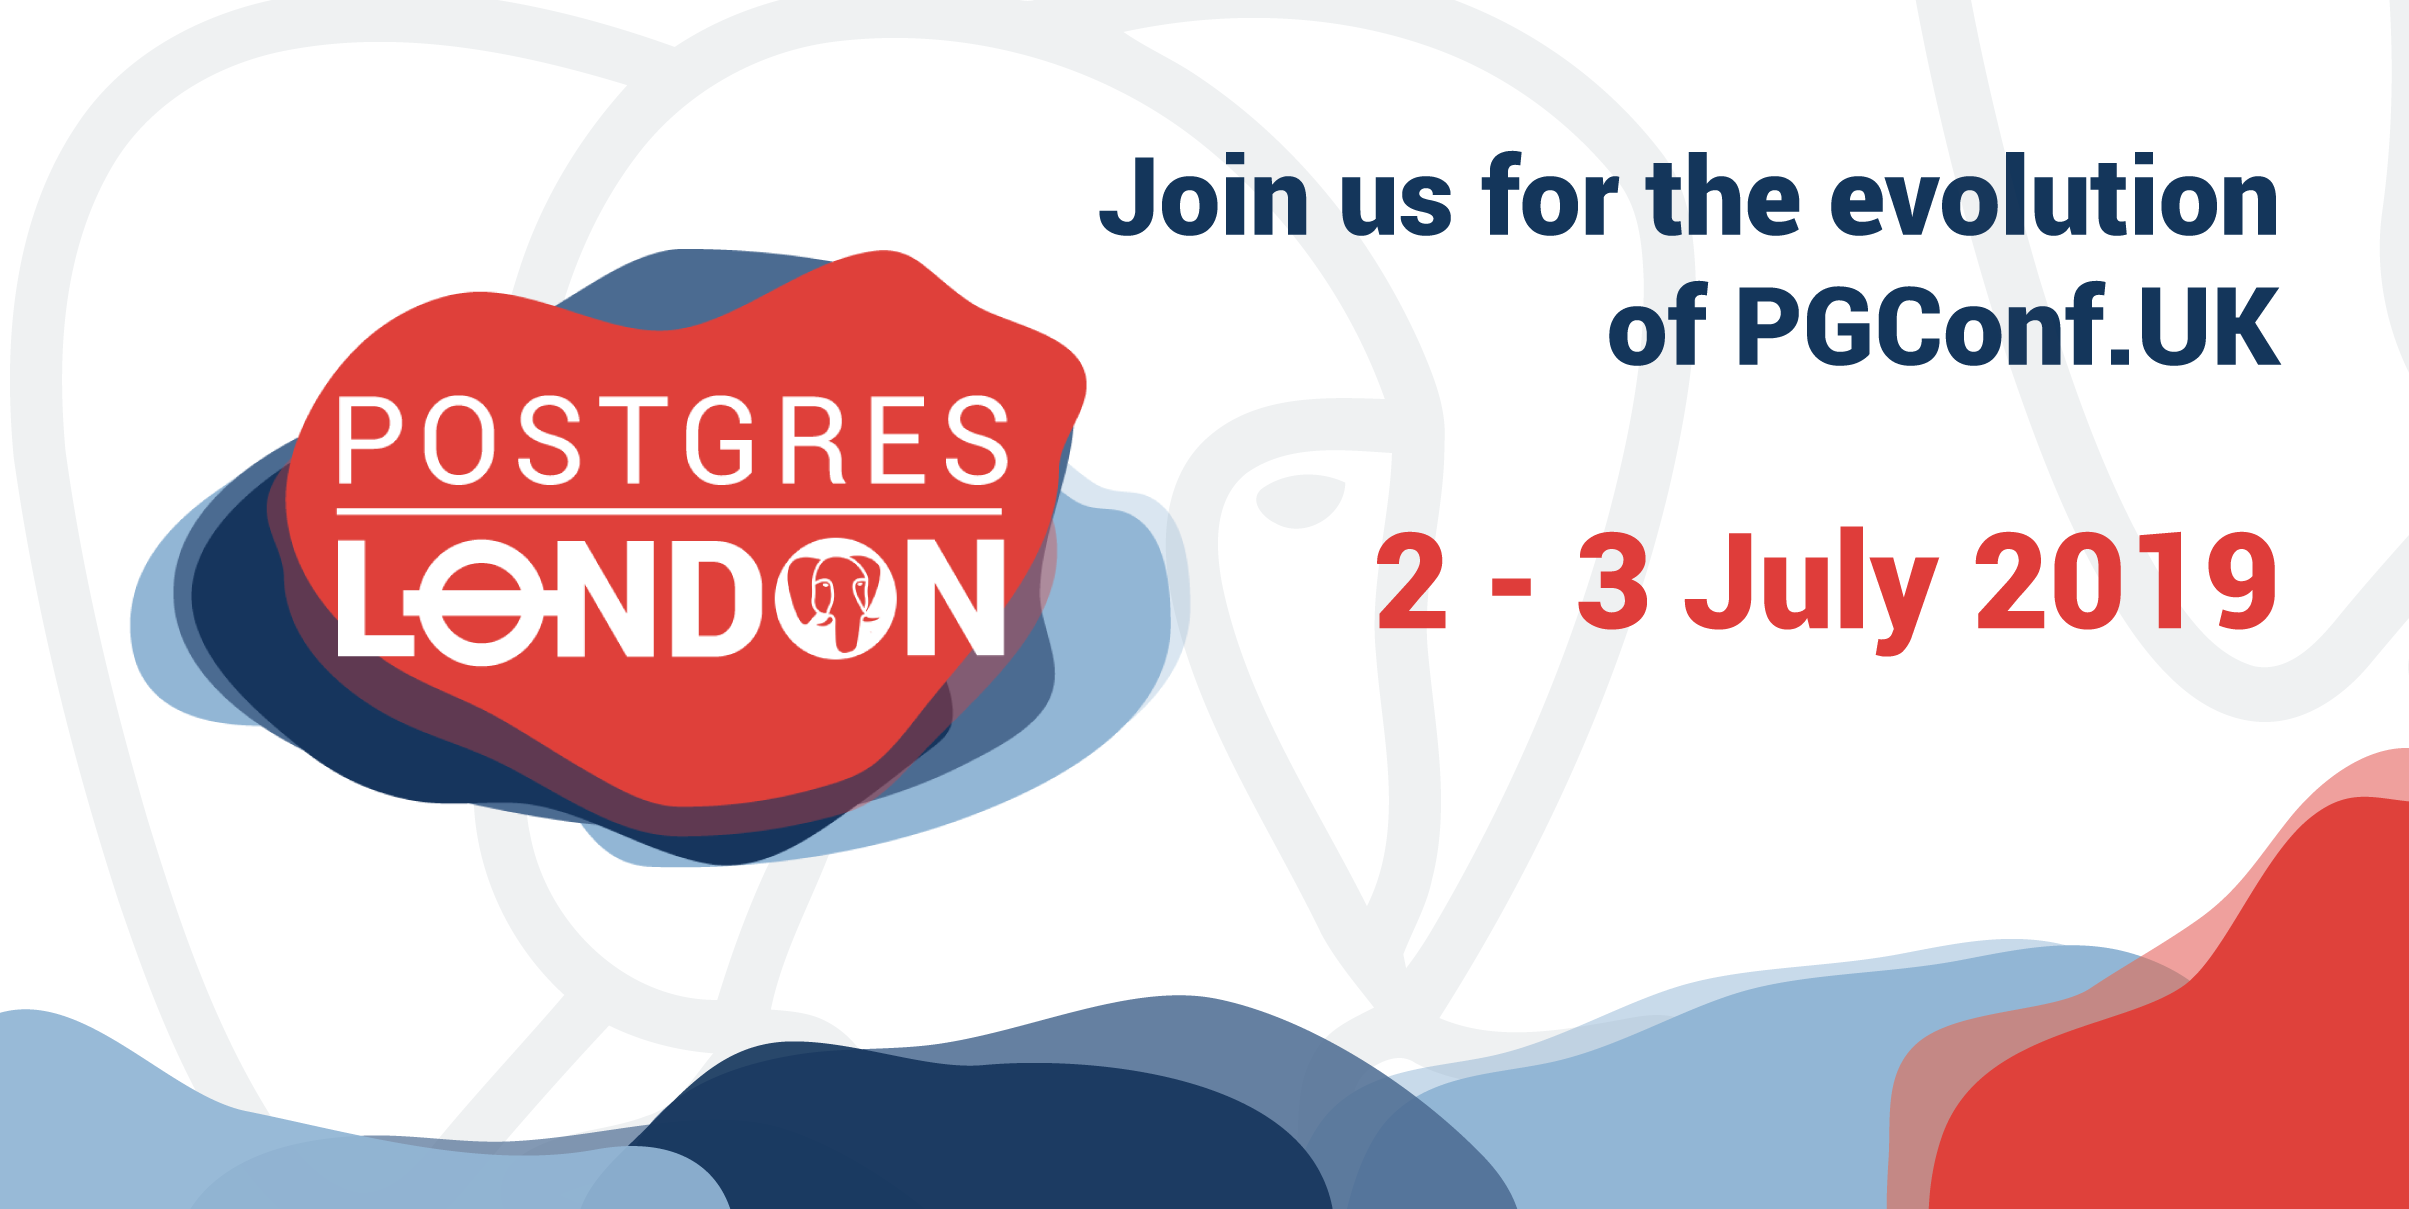 PostgresLondon 2019 - The evolution of PGConf UK